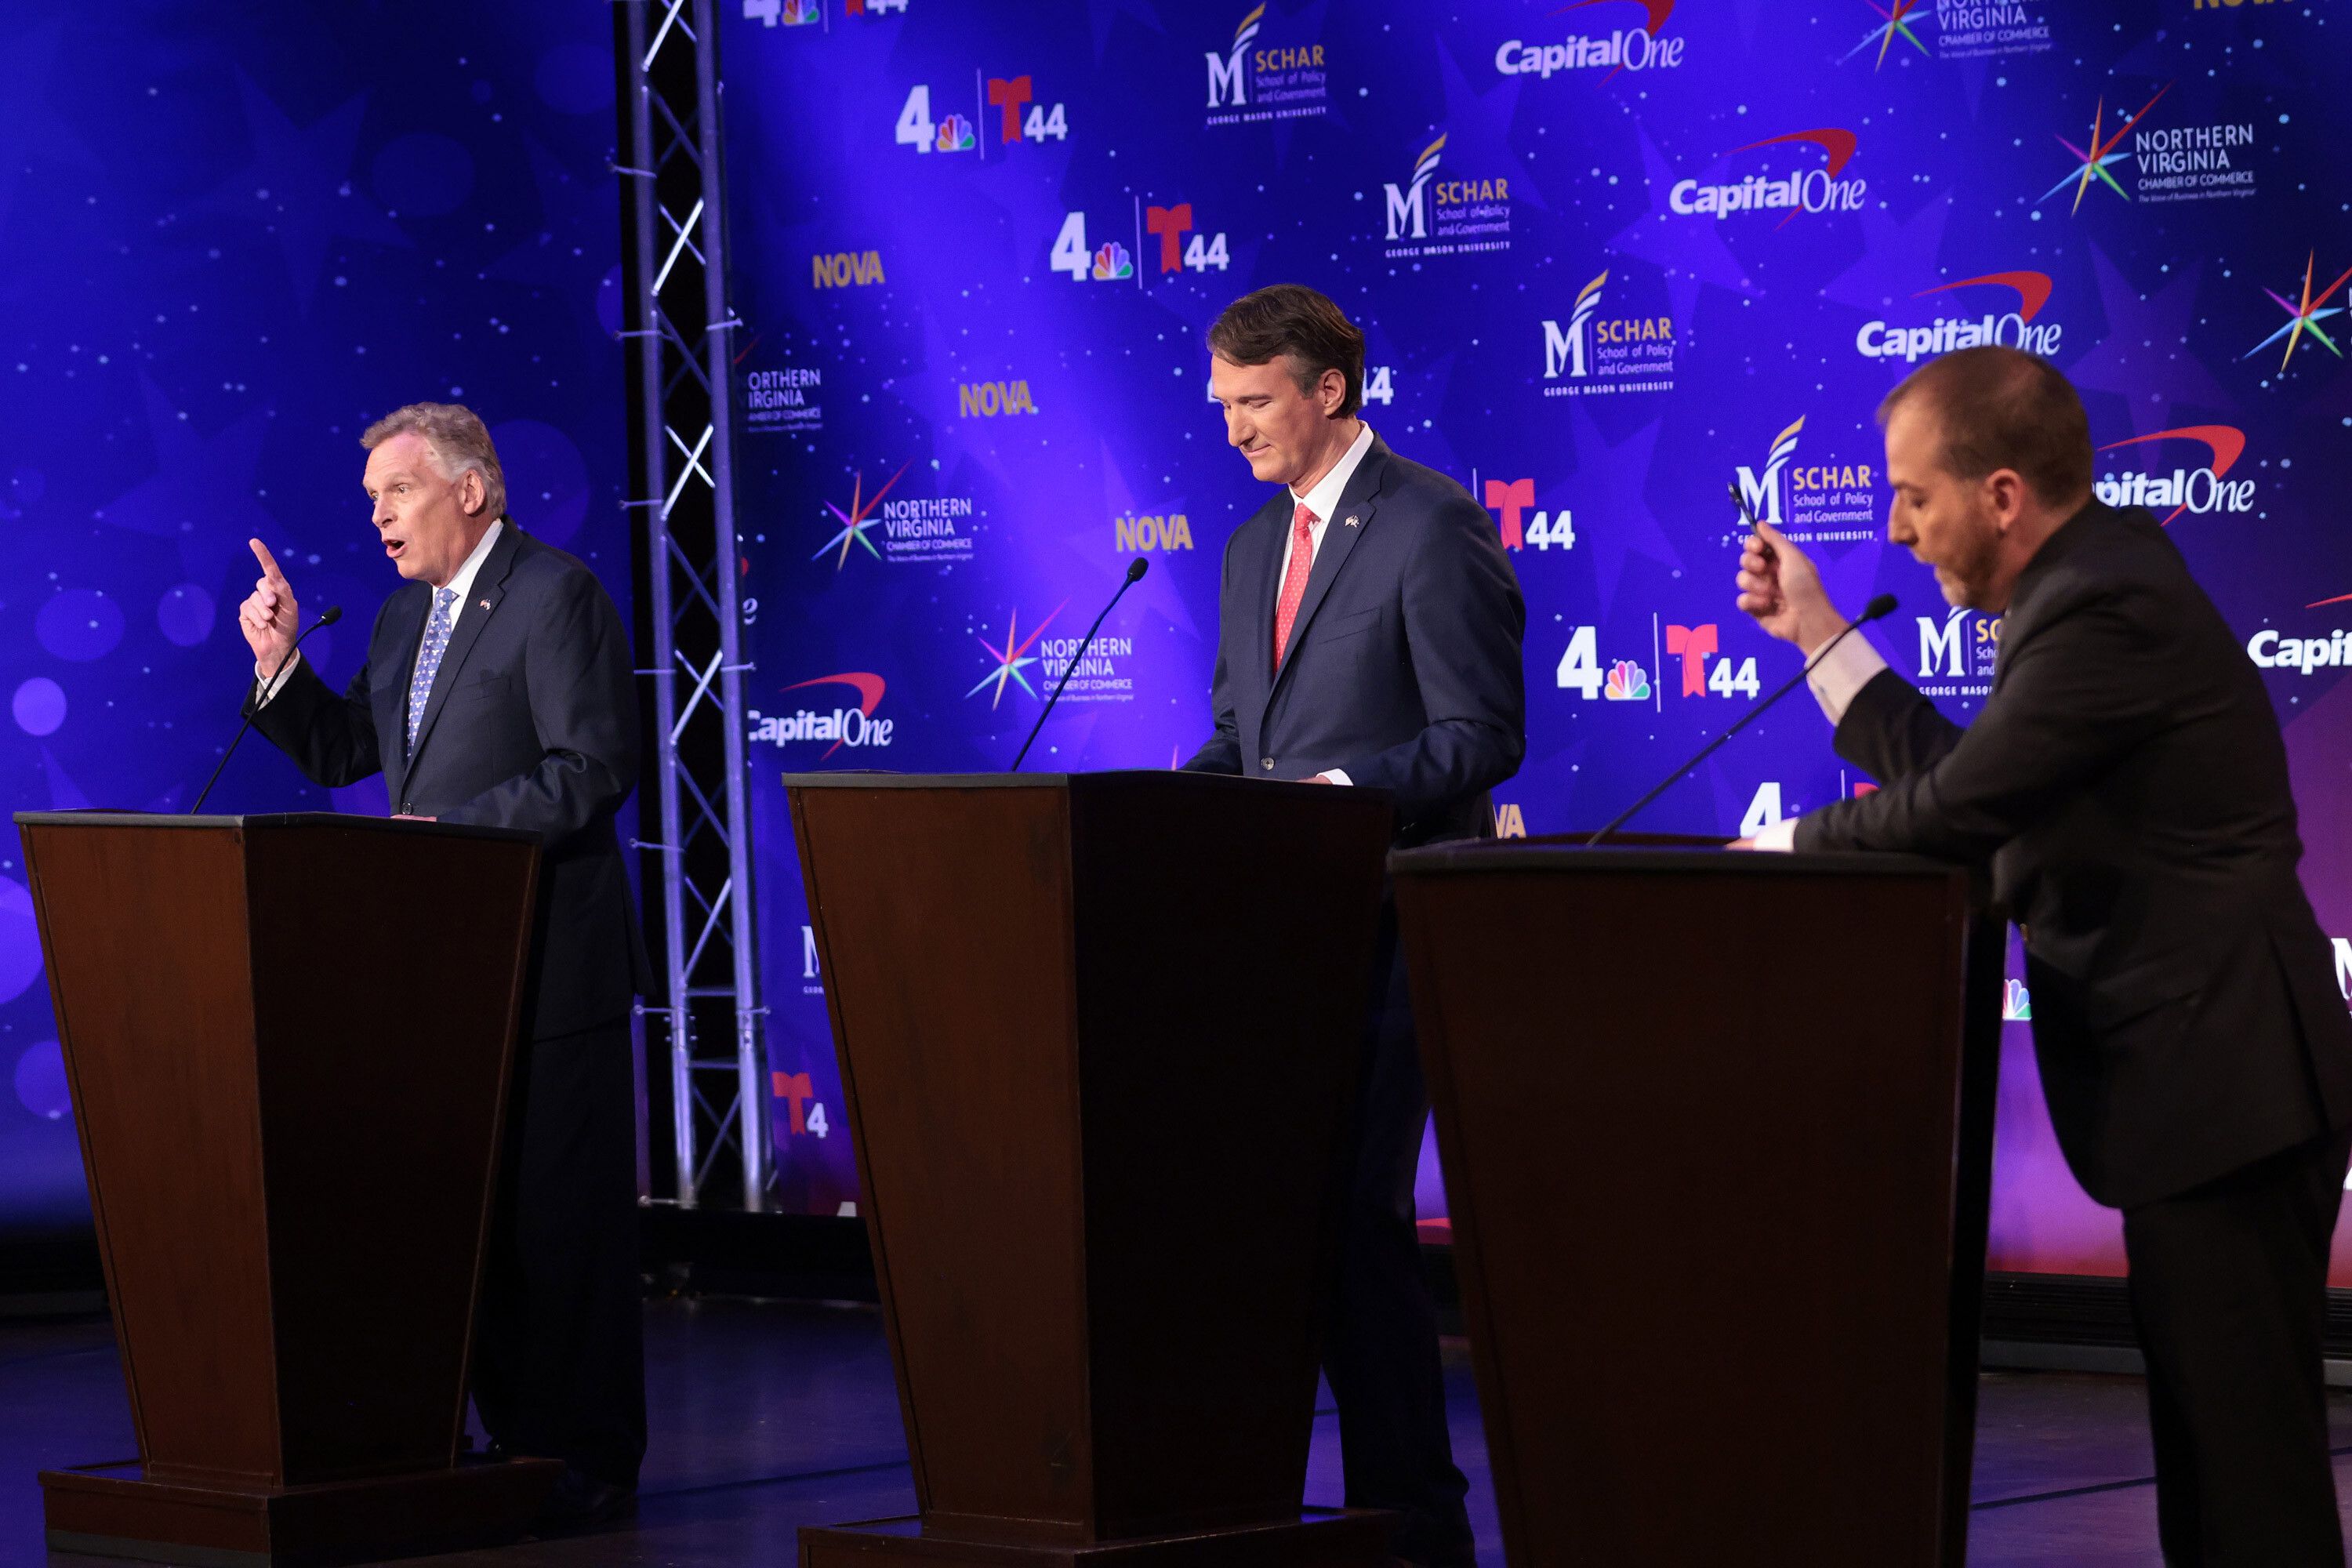 Virginia's elections will be the most telling political test yet of stringent Covid policies